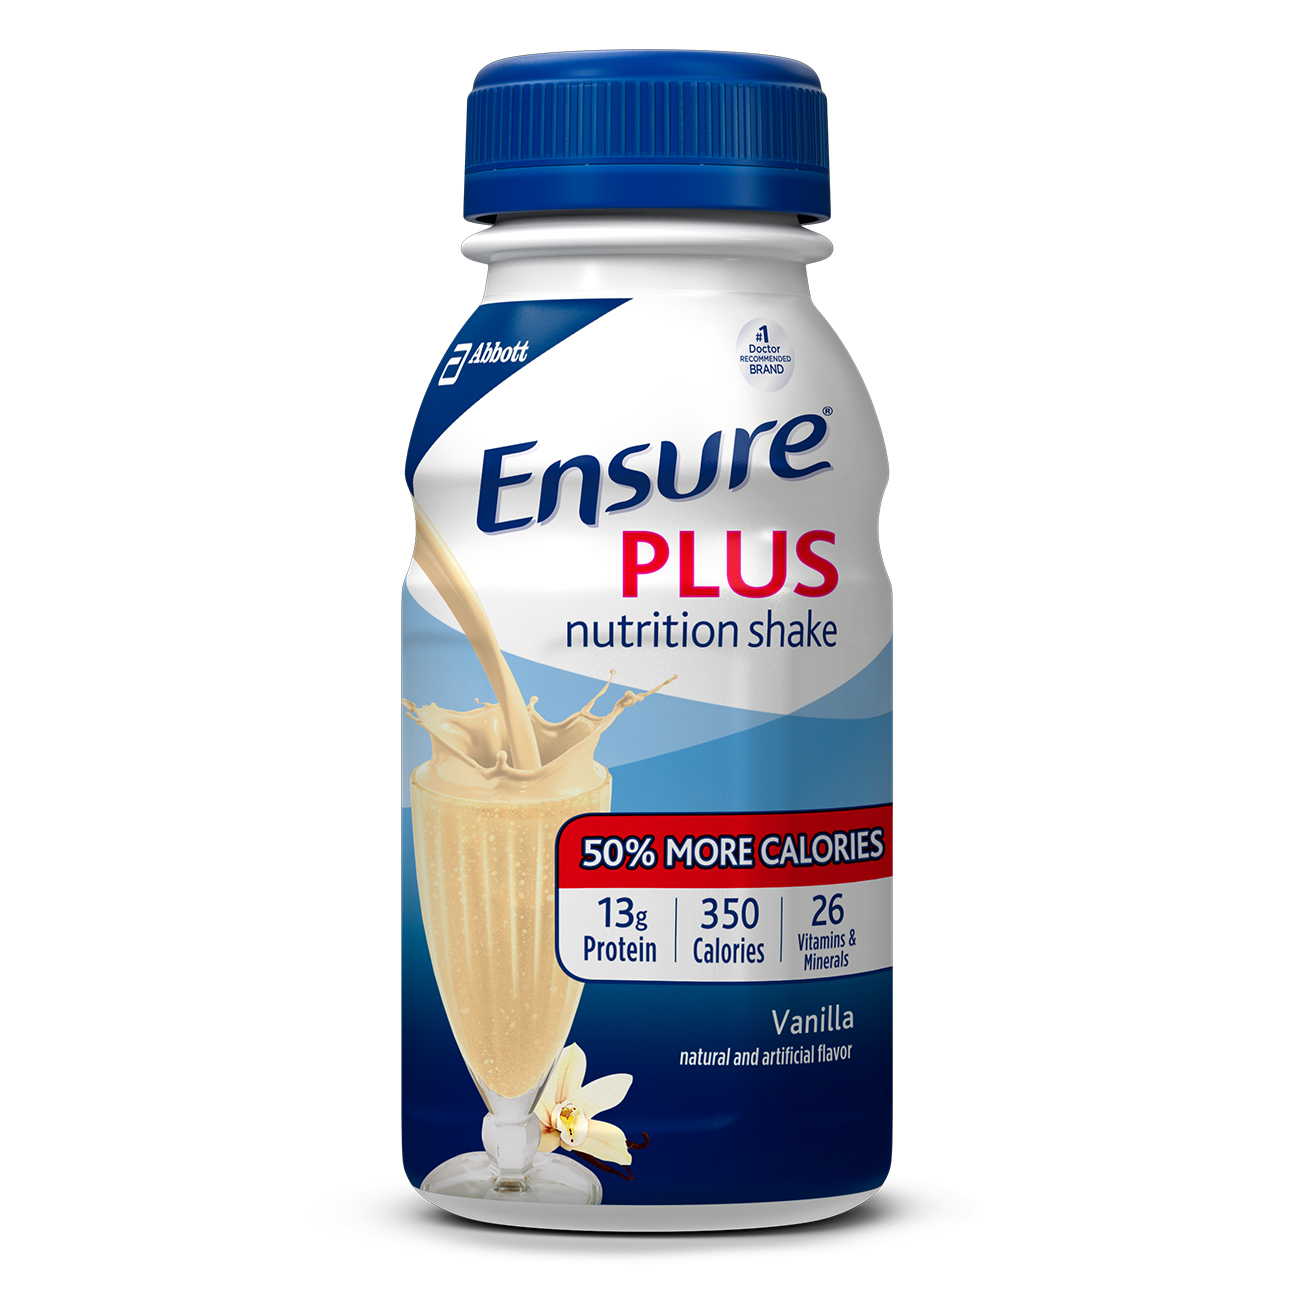 Ensure Plus Nutrition Shake Vanilla with 13 grams of protein, Meal Replacement Shakes, 8 Fl oz Bottles, 16 Ct